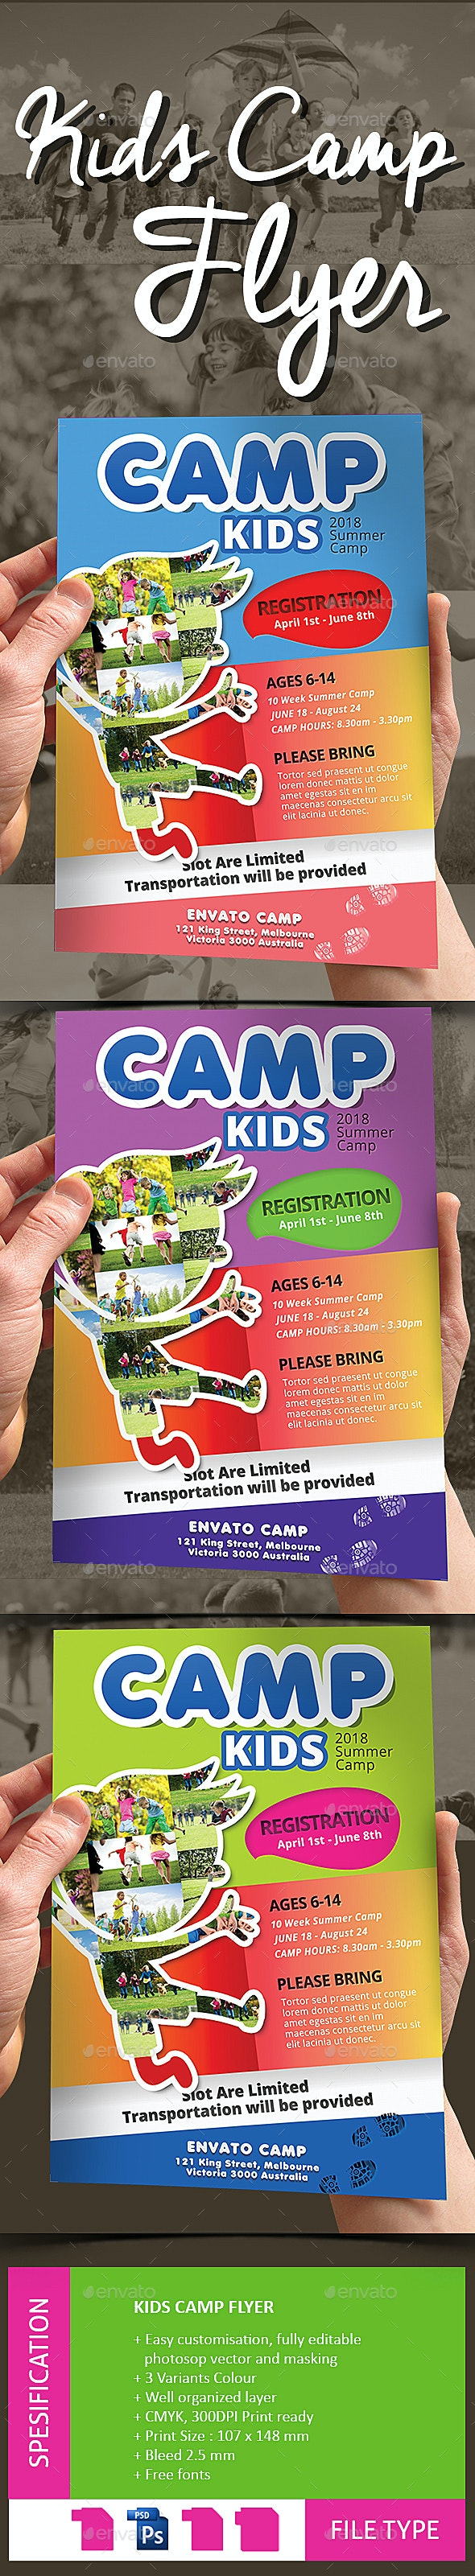 Kids Camp Flyer - Events Flyers